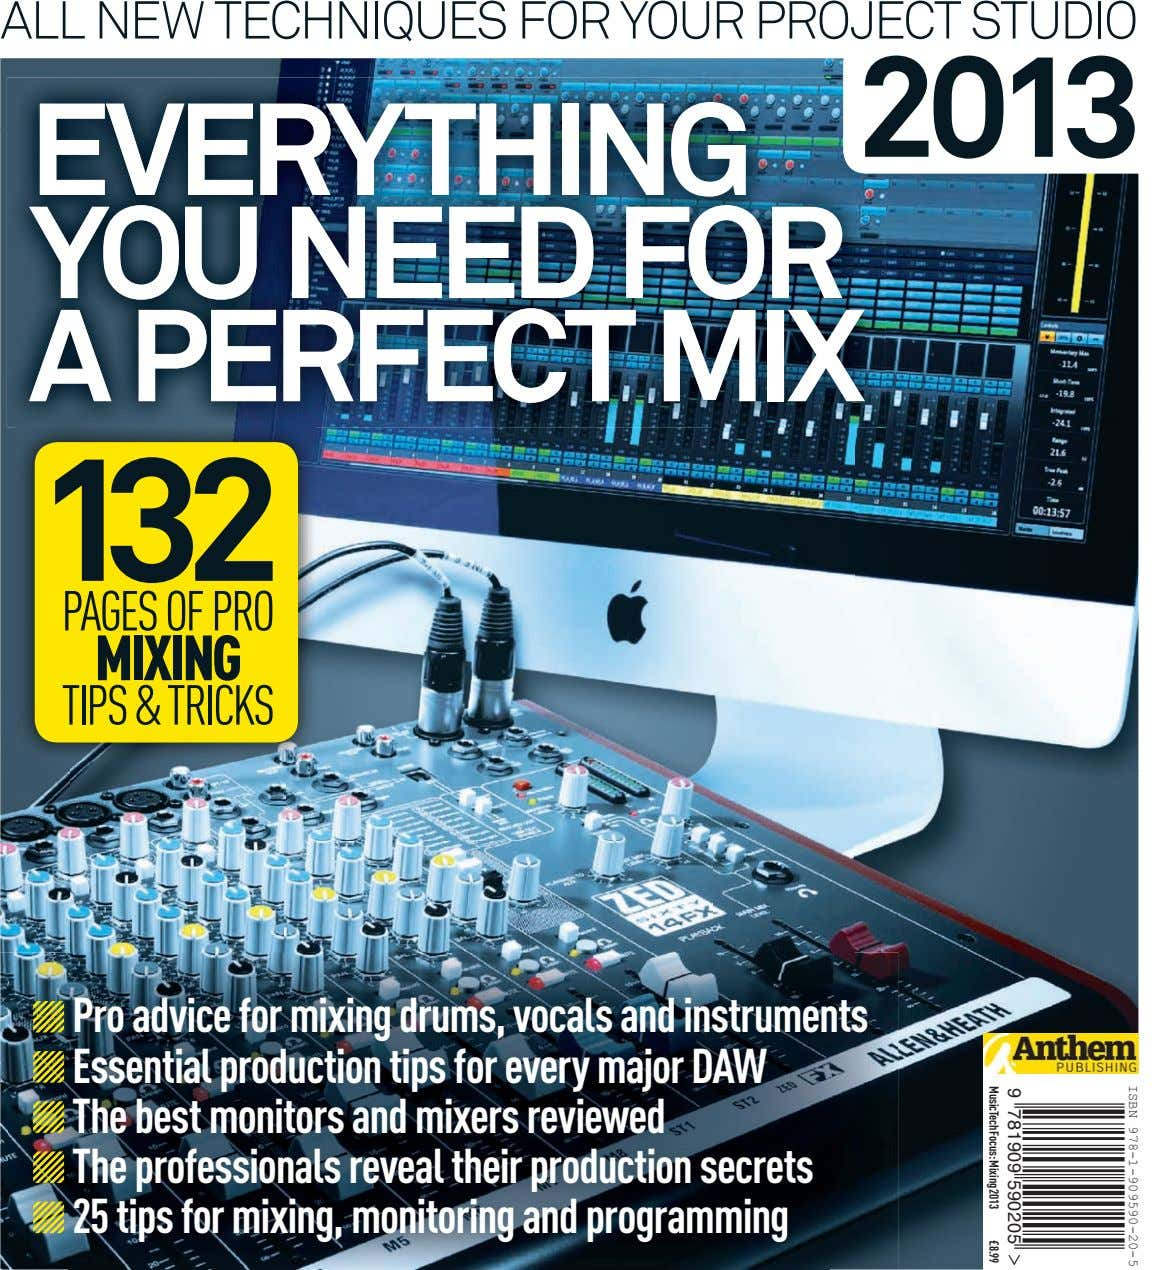 ALL NEW TECHNIQUES FOR YOUR PROJECT STUDIO 2013 EVERYTHING EVERYTHING EVERYTHING ISBN 978-1-909590-20-5 YOU NEED